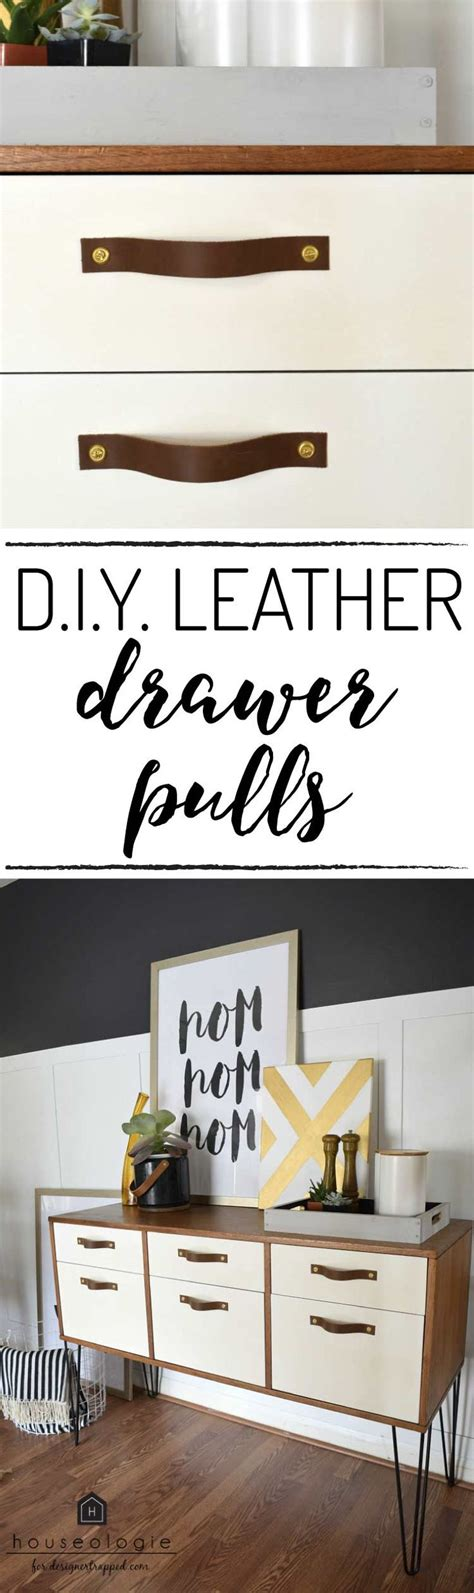 ikea drawer pulls 25 best ideas about drawer pulls on hanging